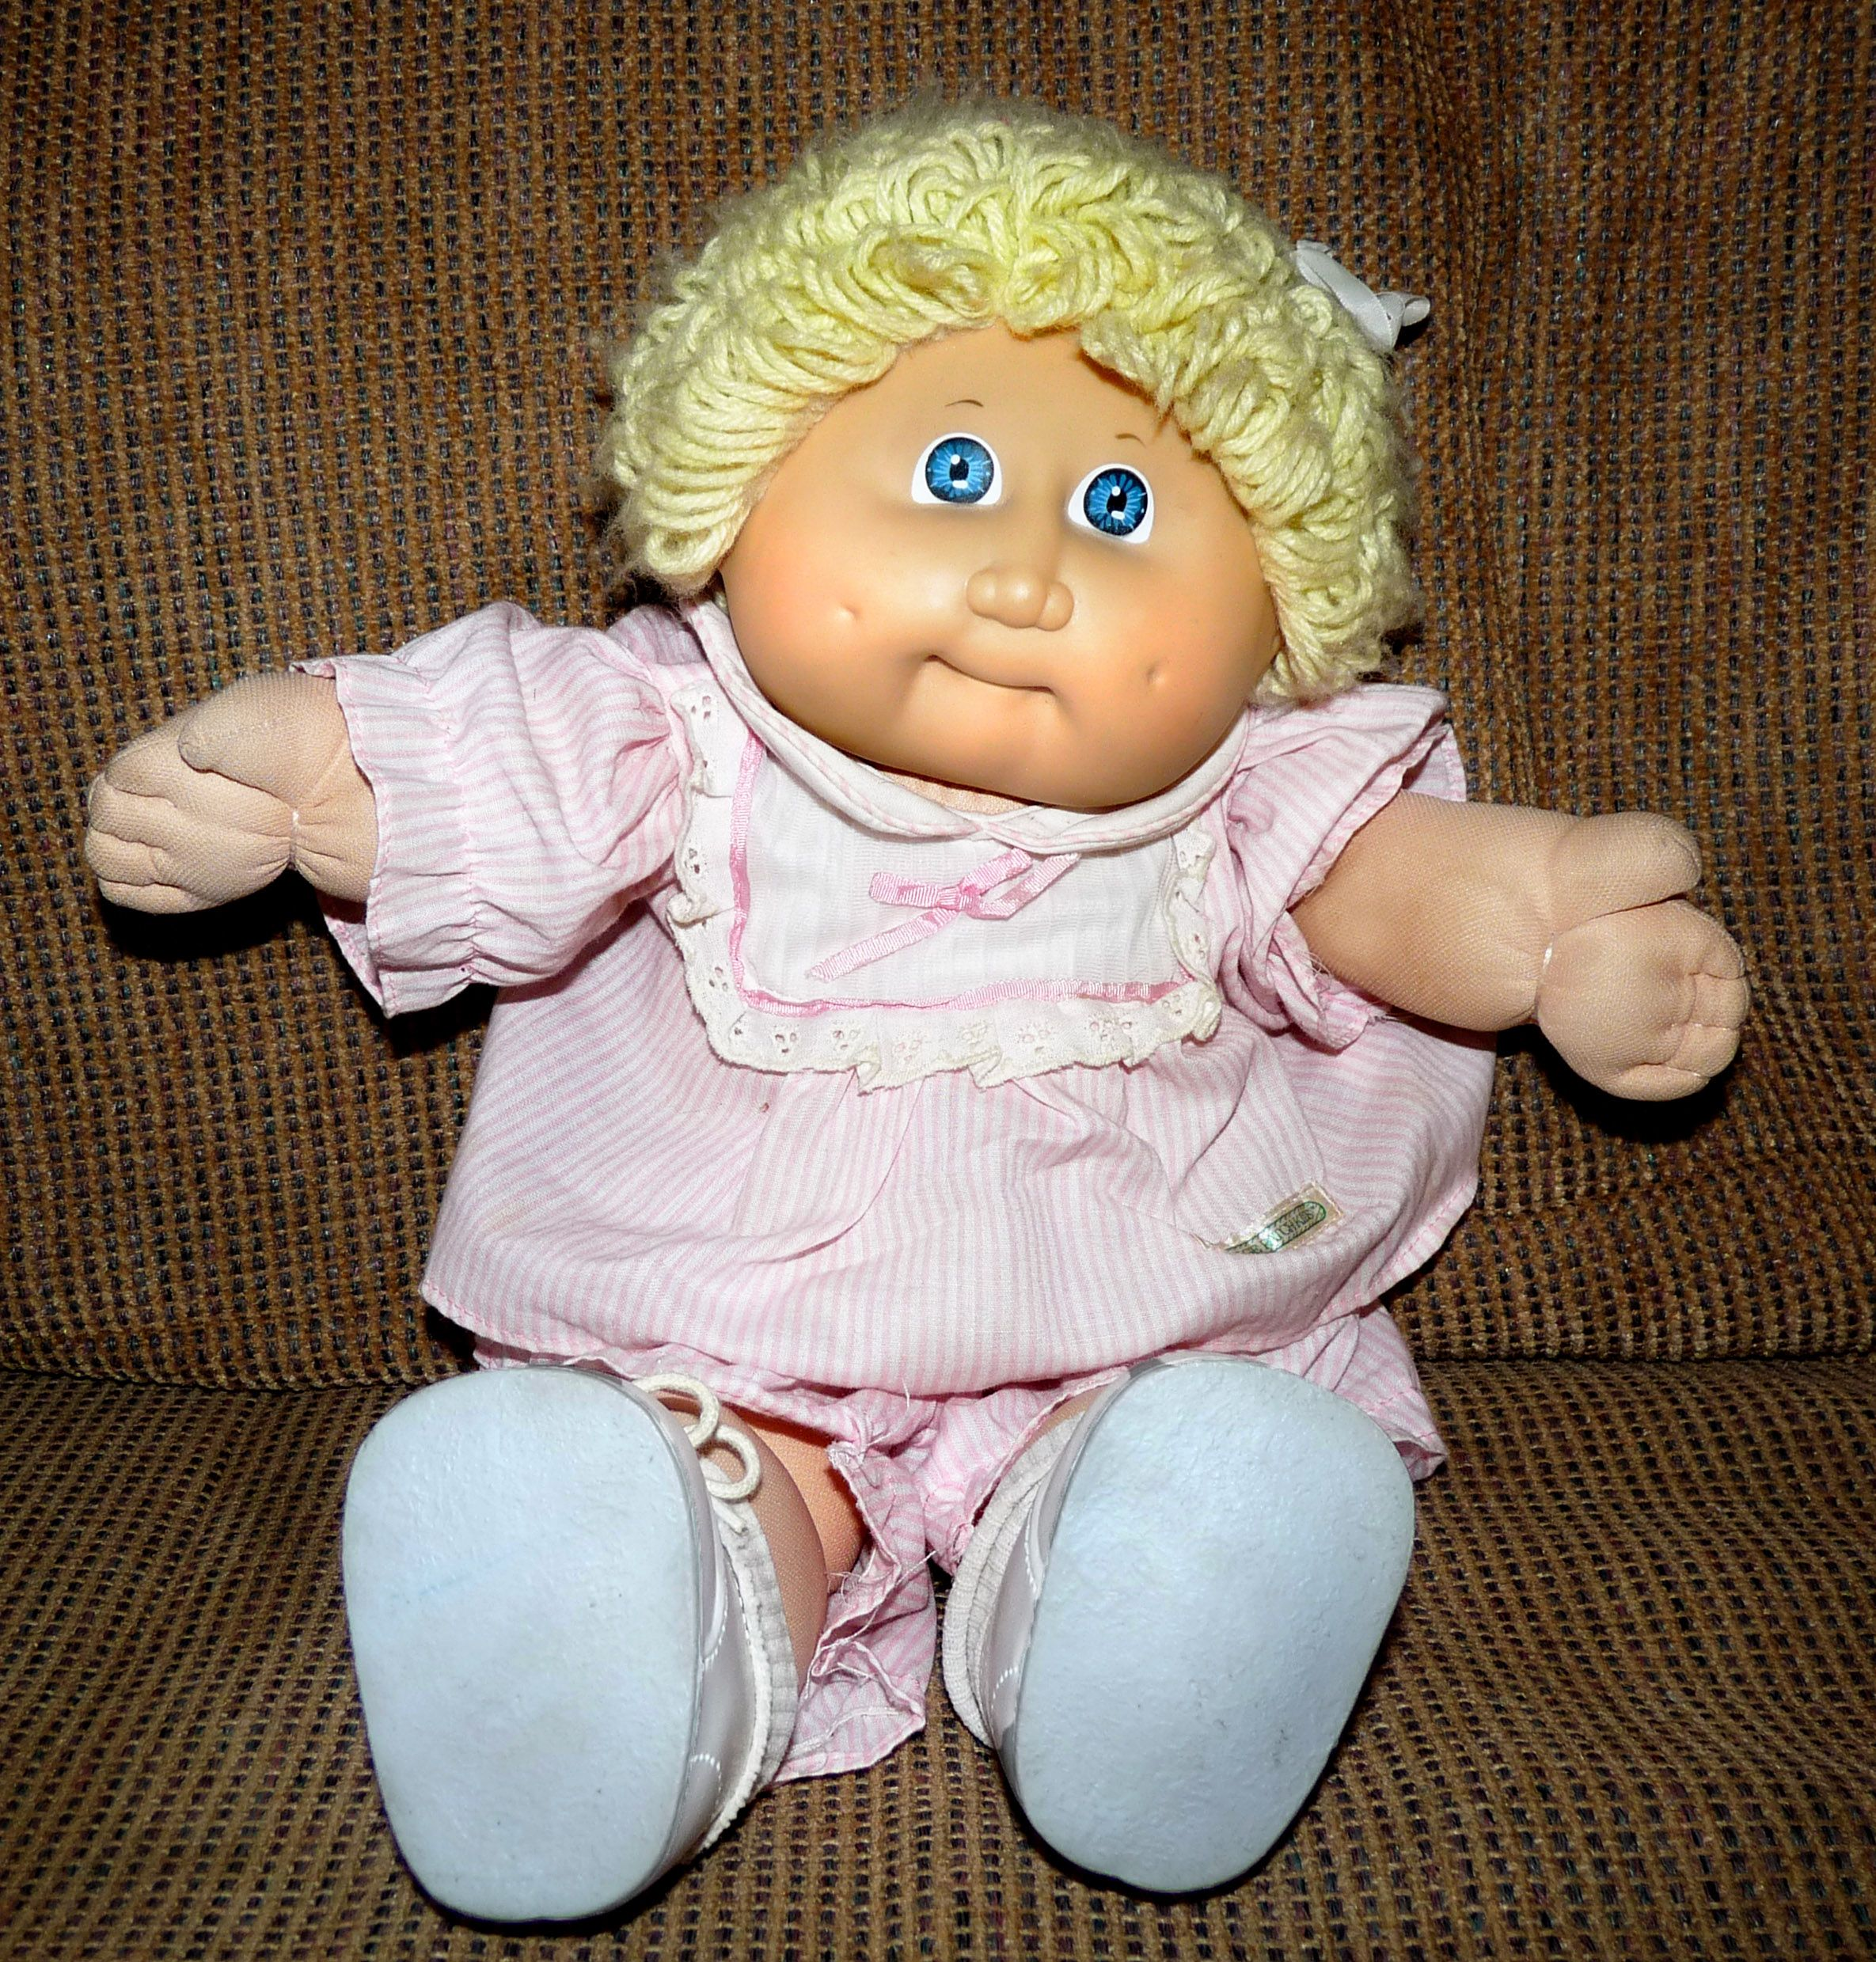 Cabbage Patch Kid Looks Just Like The One I Had Marcella Junia Cabbage Patch Kids Cabbage Patch Dolls Cabbage Patch